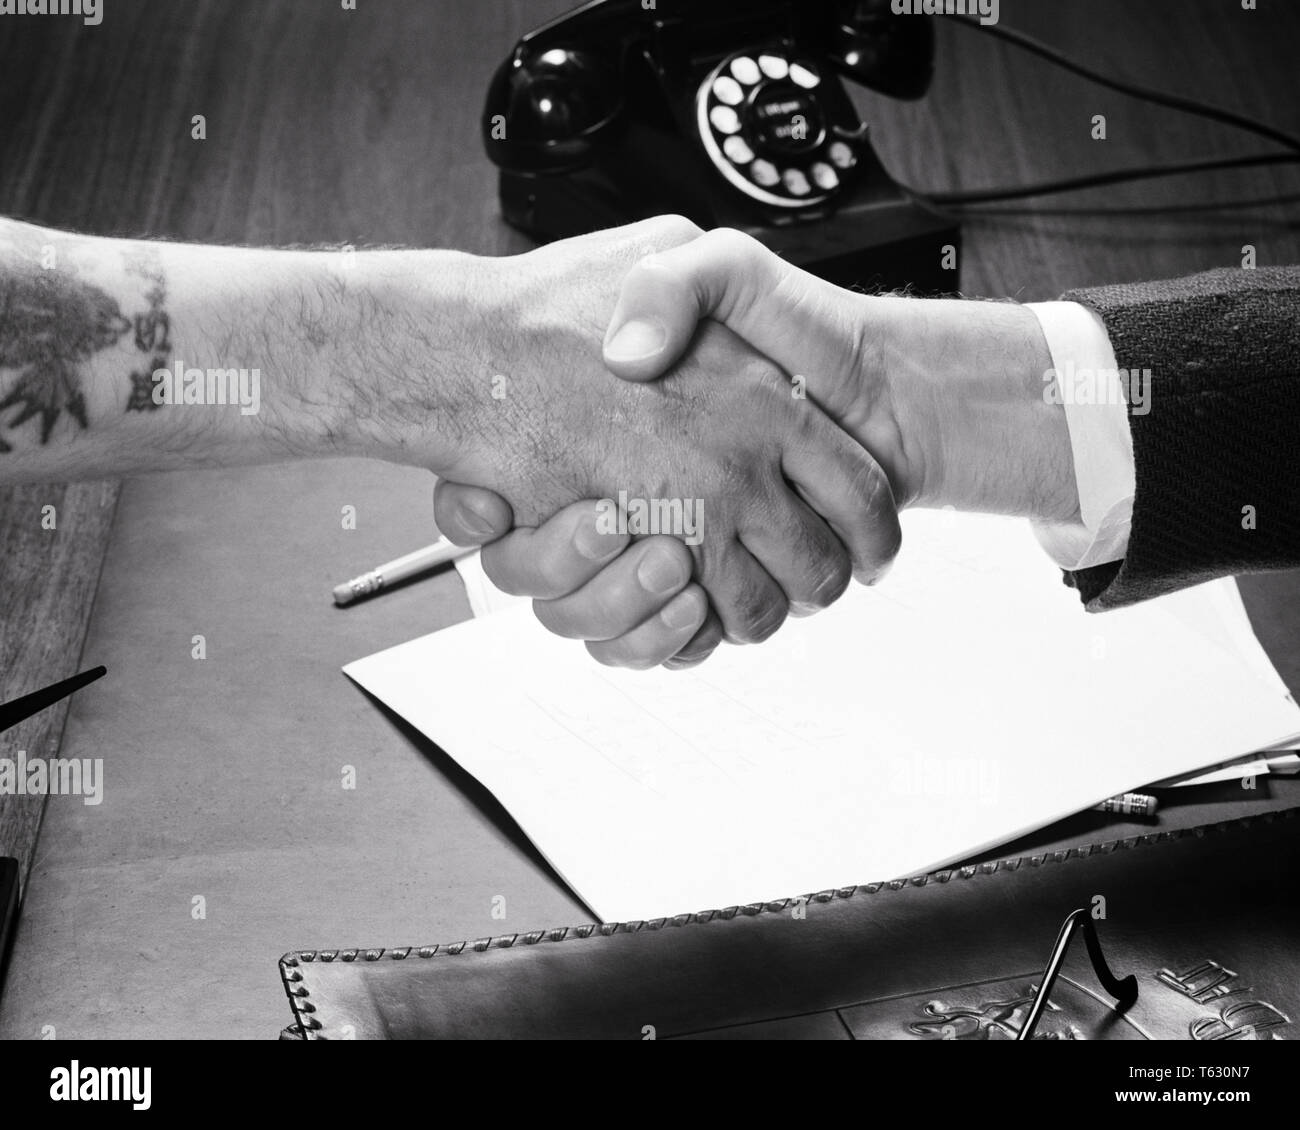 1940s 1950s BUSINESSMAN SHAKING HANDS WITH WORKMAN MANUAL LABORER OVER OFFICE DESK WITH TELEPHONE - s9462 HAR001 HARS PERSONS INSPIRATION MALES MANAGEMENT B&W GOALS SUCCESS SKILL CUFF OCCUPATION SKILLS AGREE HIGH ANGLE MANUAL STRENGTH STRATEGY AGREEMENT LEADERSHIP PROGRESS LABOR OPPORTUNITY EMPLOYMENT OCCUPATIONS SHAKING HANDS CONNECTION CONCEPTUAL SUPPORT EMPLOYEE TATOO COOPERATION GROWTH IDEAS SOLUTIONS TOGETHERNESS BLACK AND WHITE CAUCASIAN ETHNICITY HANDS ONLY HAR001 LABORER LABORING OLD FASHIONED - Stock Image